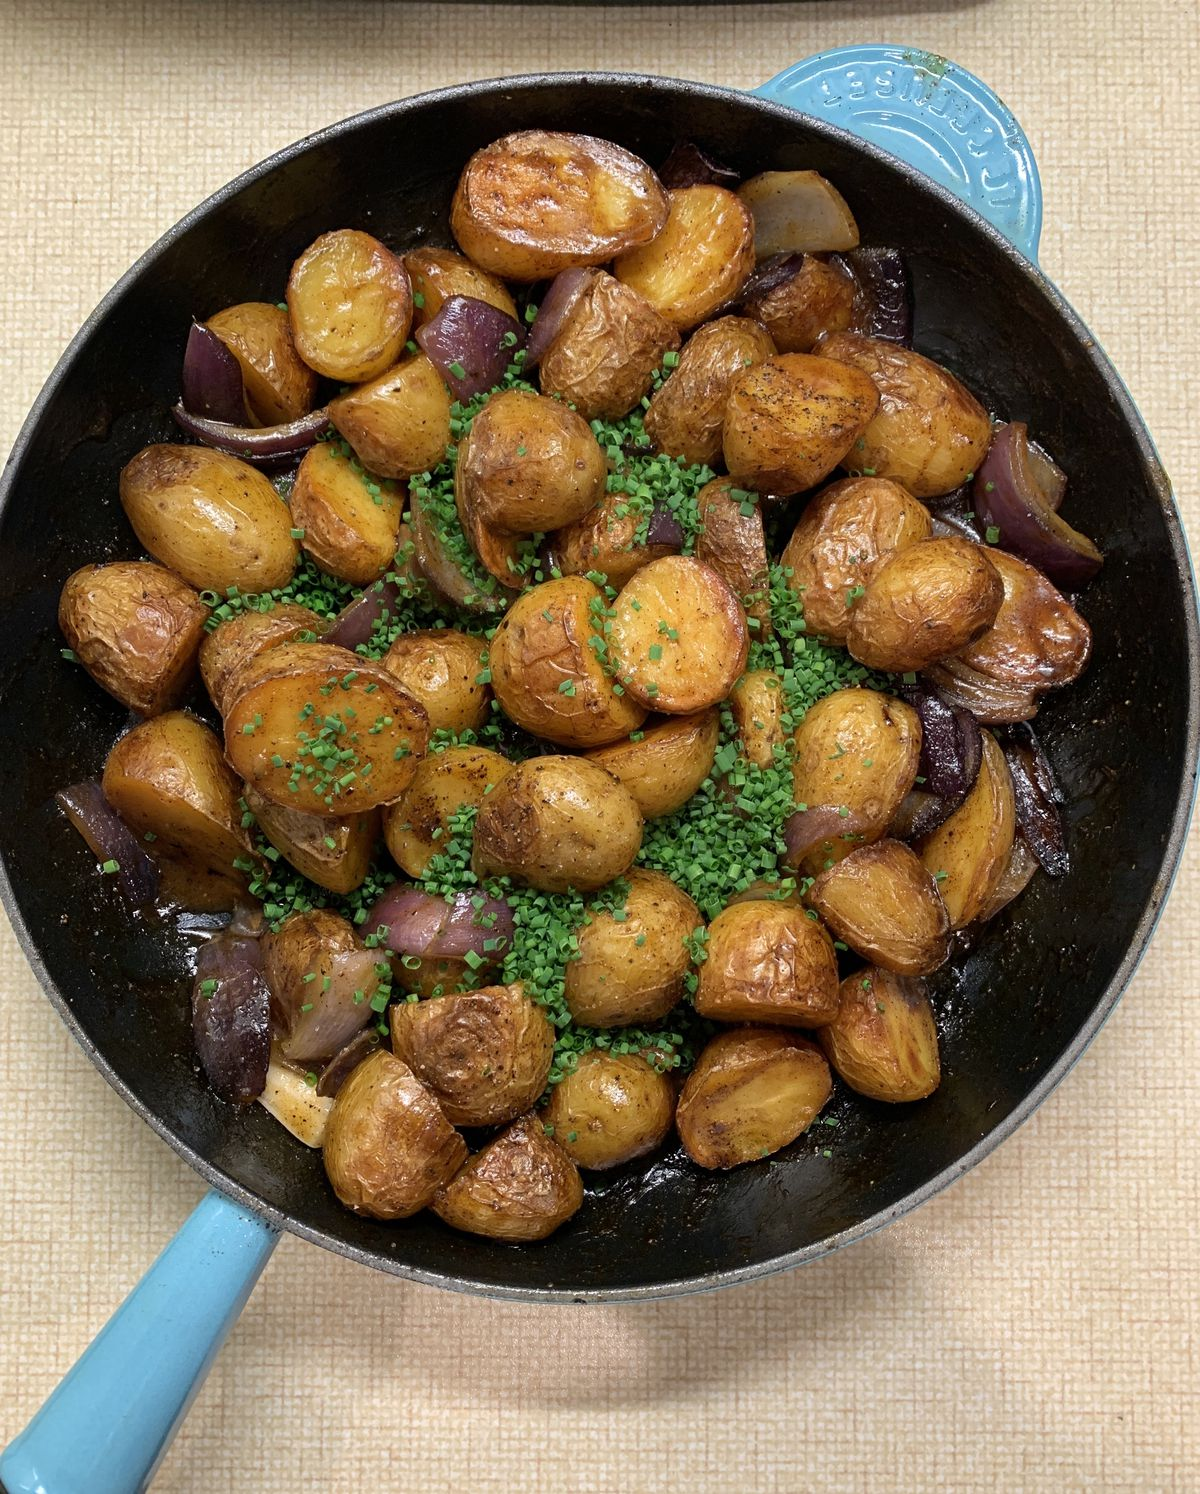 Spiced roast potatoes with chicken and tarragon gravy by Jeremy Chan of Michelin-starred central London restaurant Ikoyi